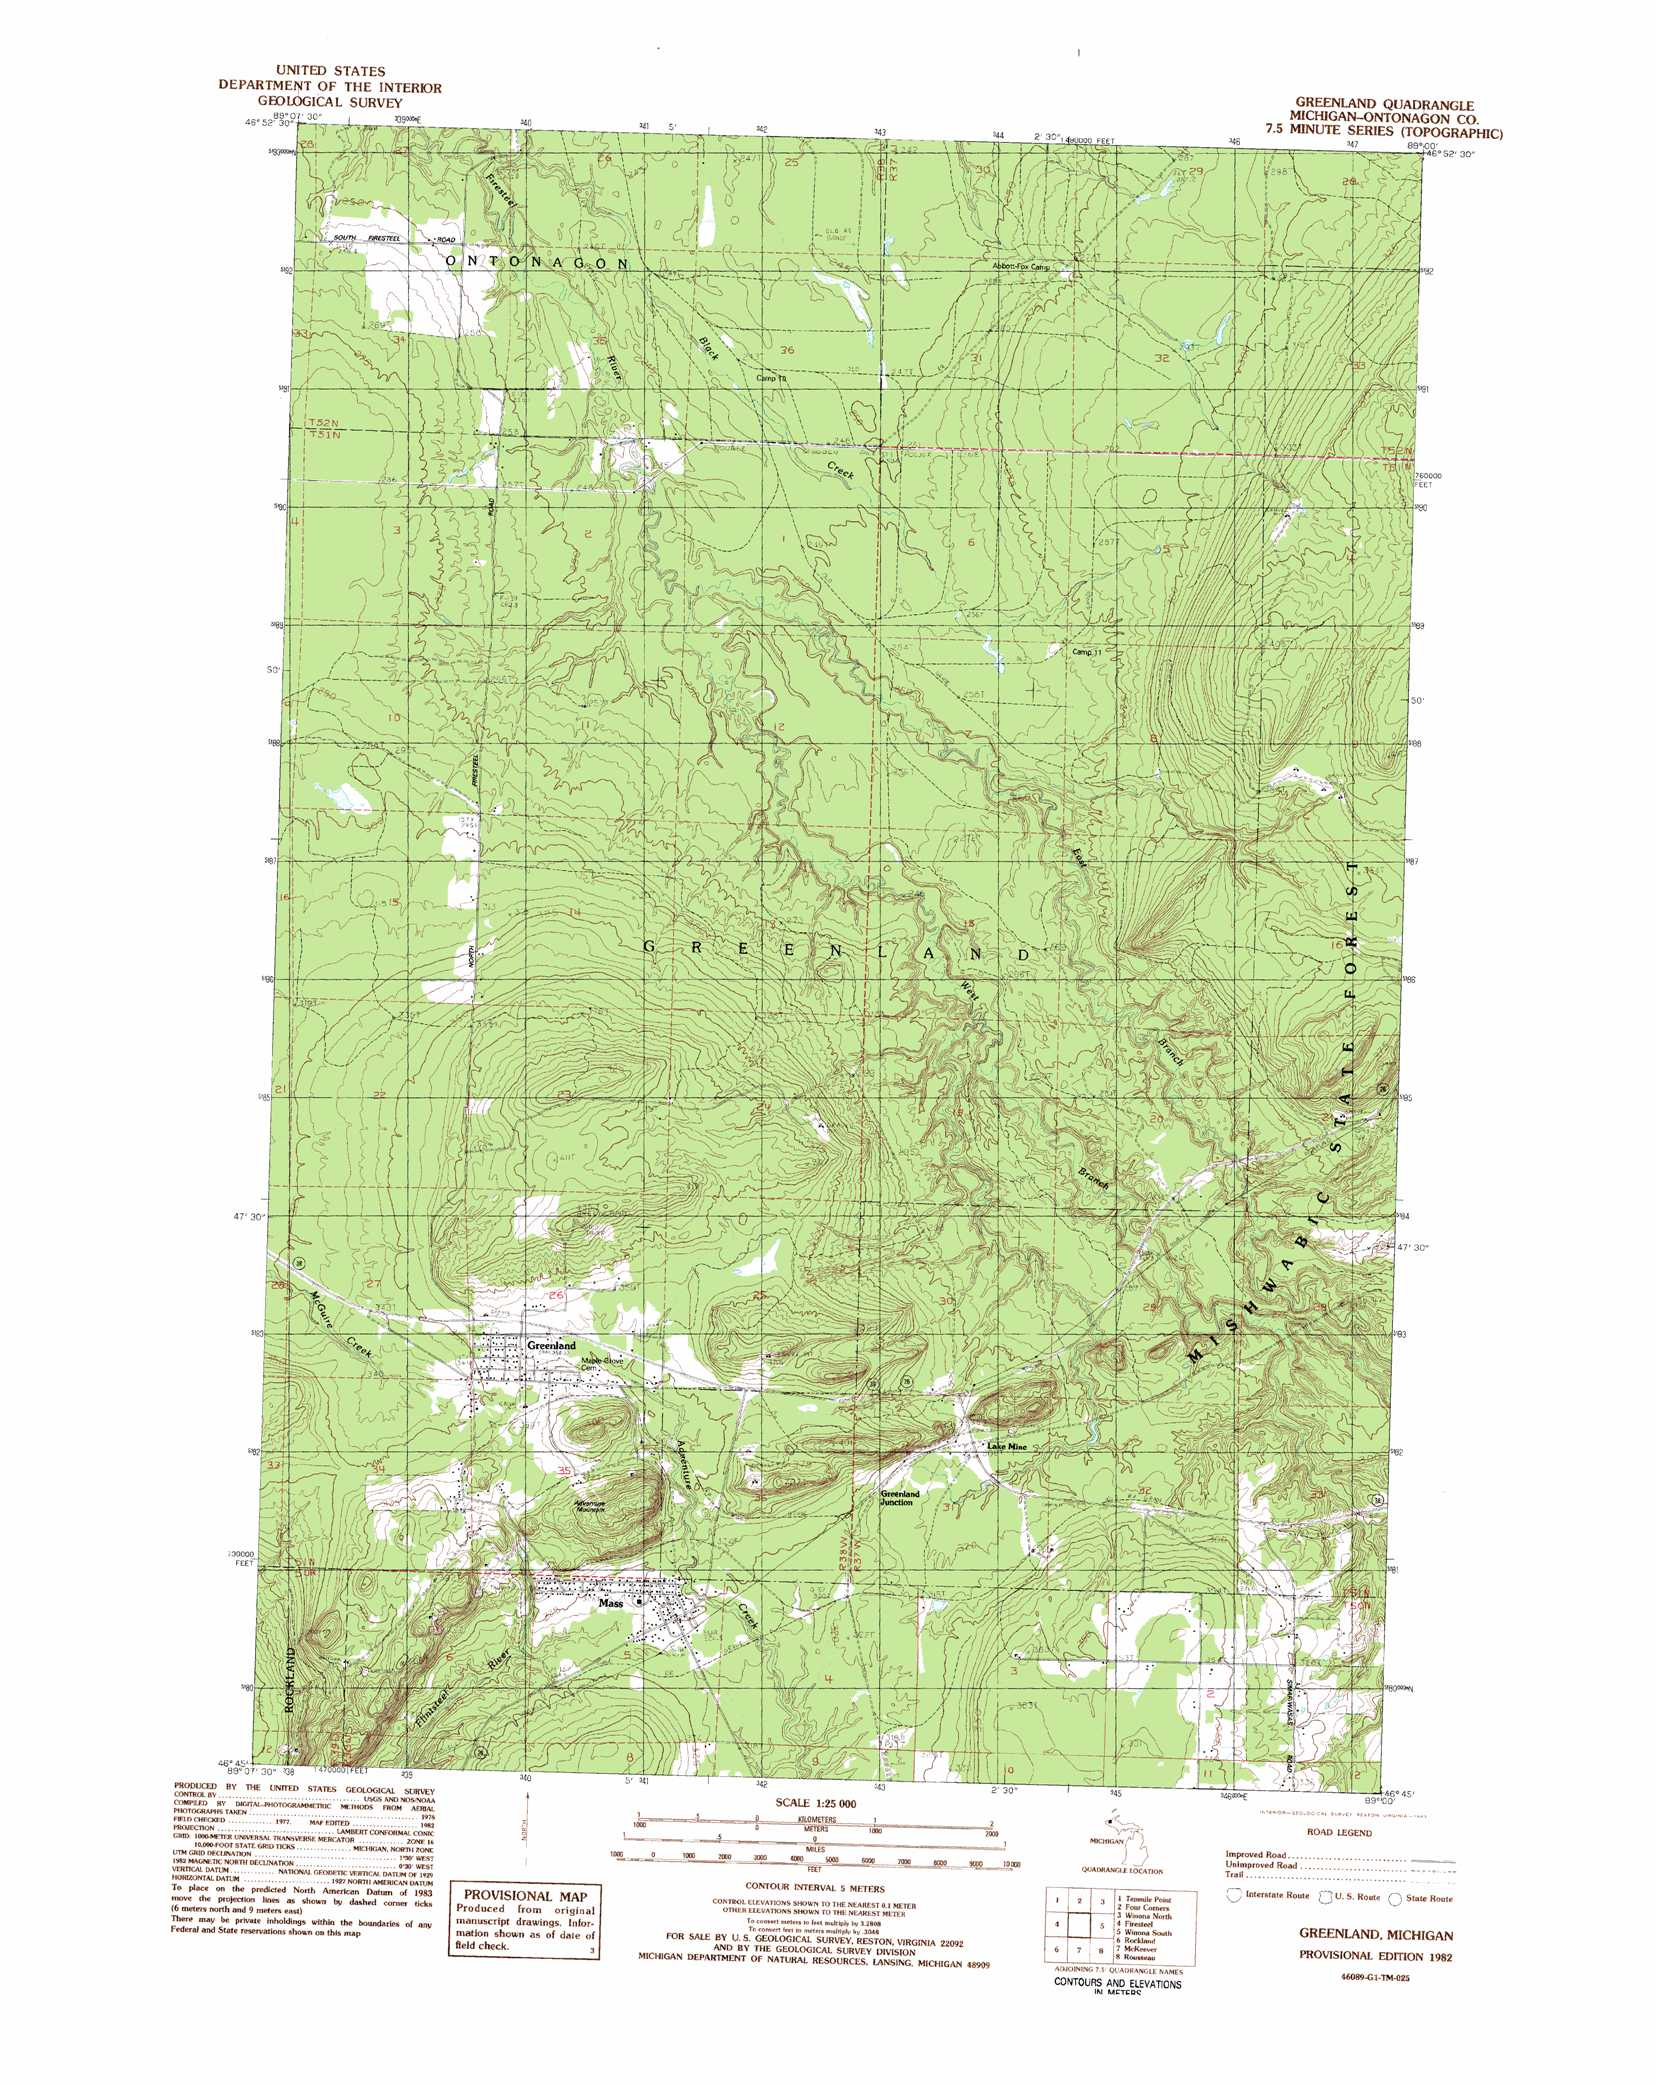 Greenland topographic map, MI - USGS Topo Quad 46089g1